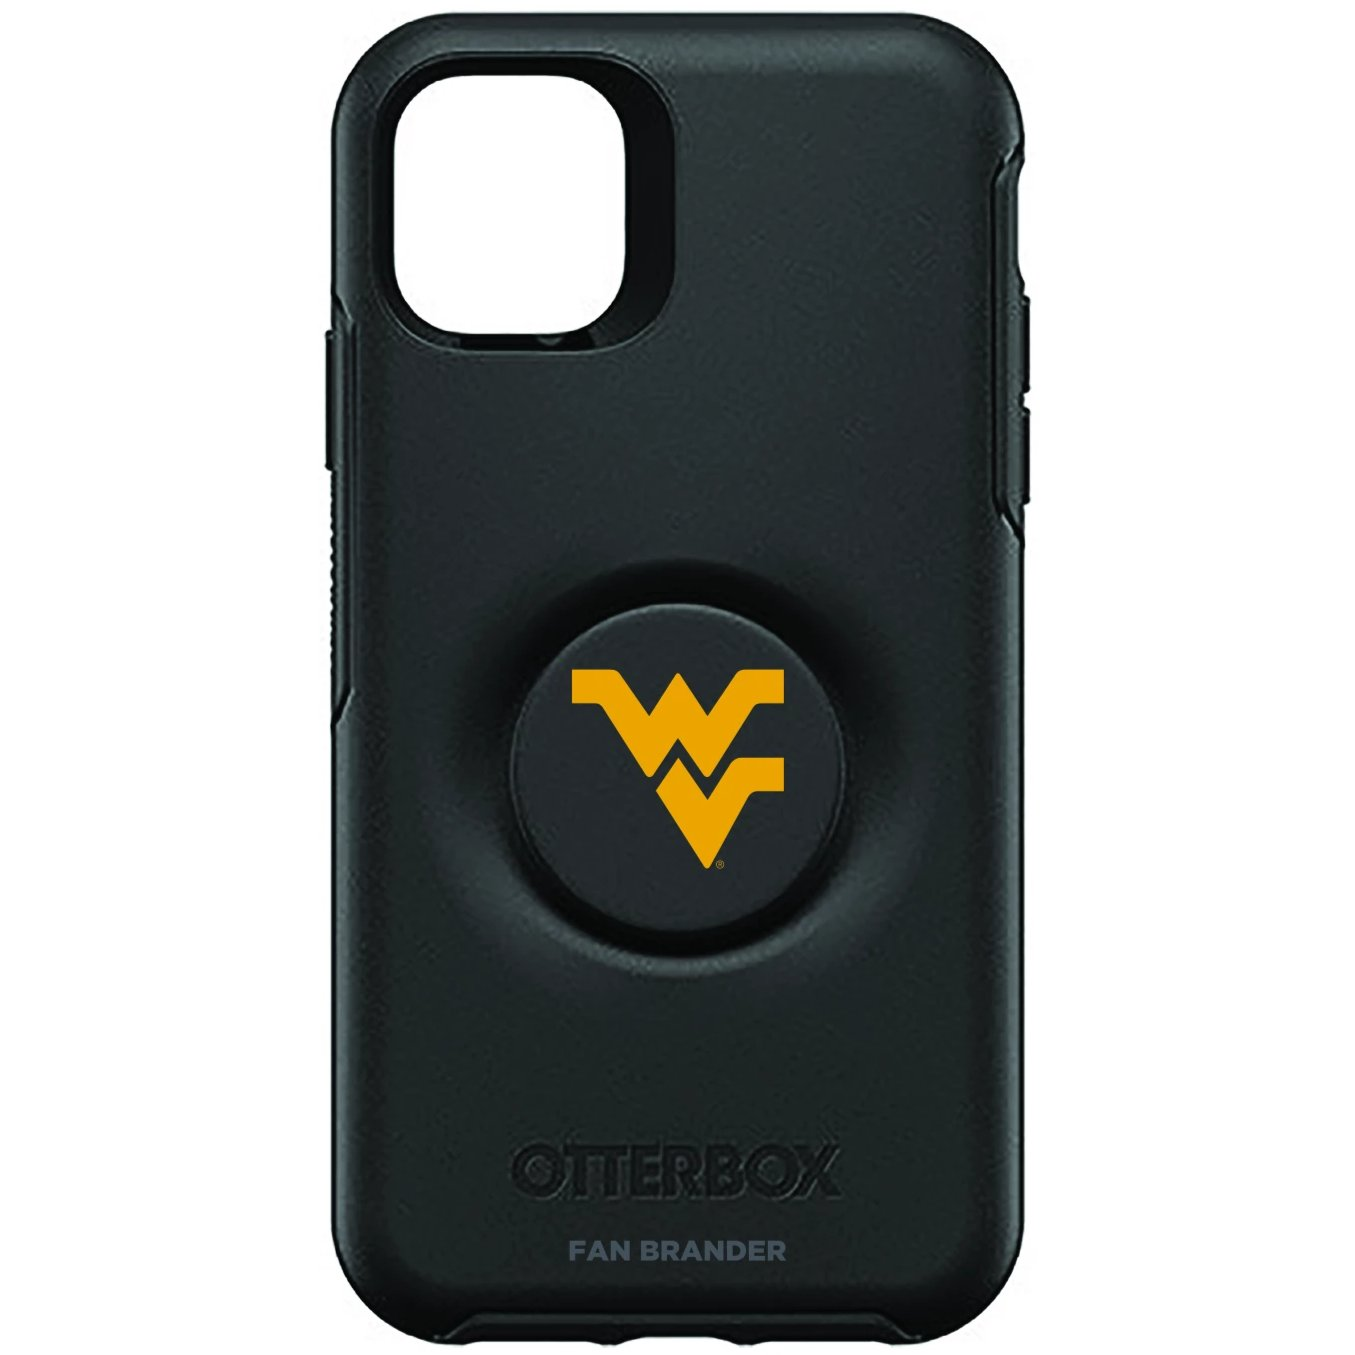 West Virginia Mountaineers Otter + Pop Symmetry Case (for iPhone 11, Pro, Pro Max)